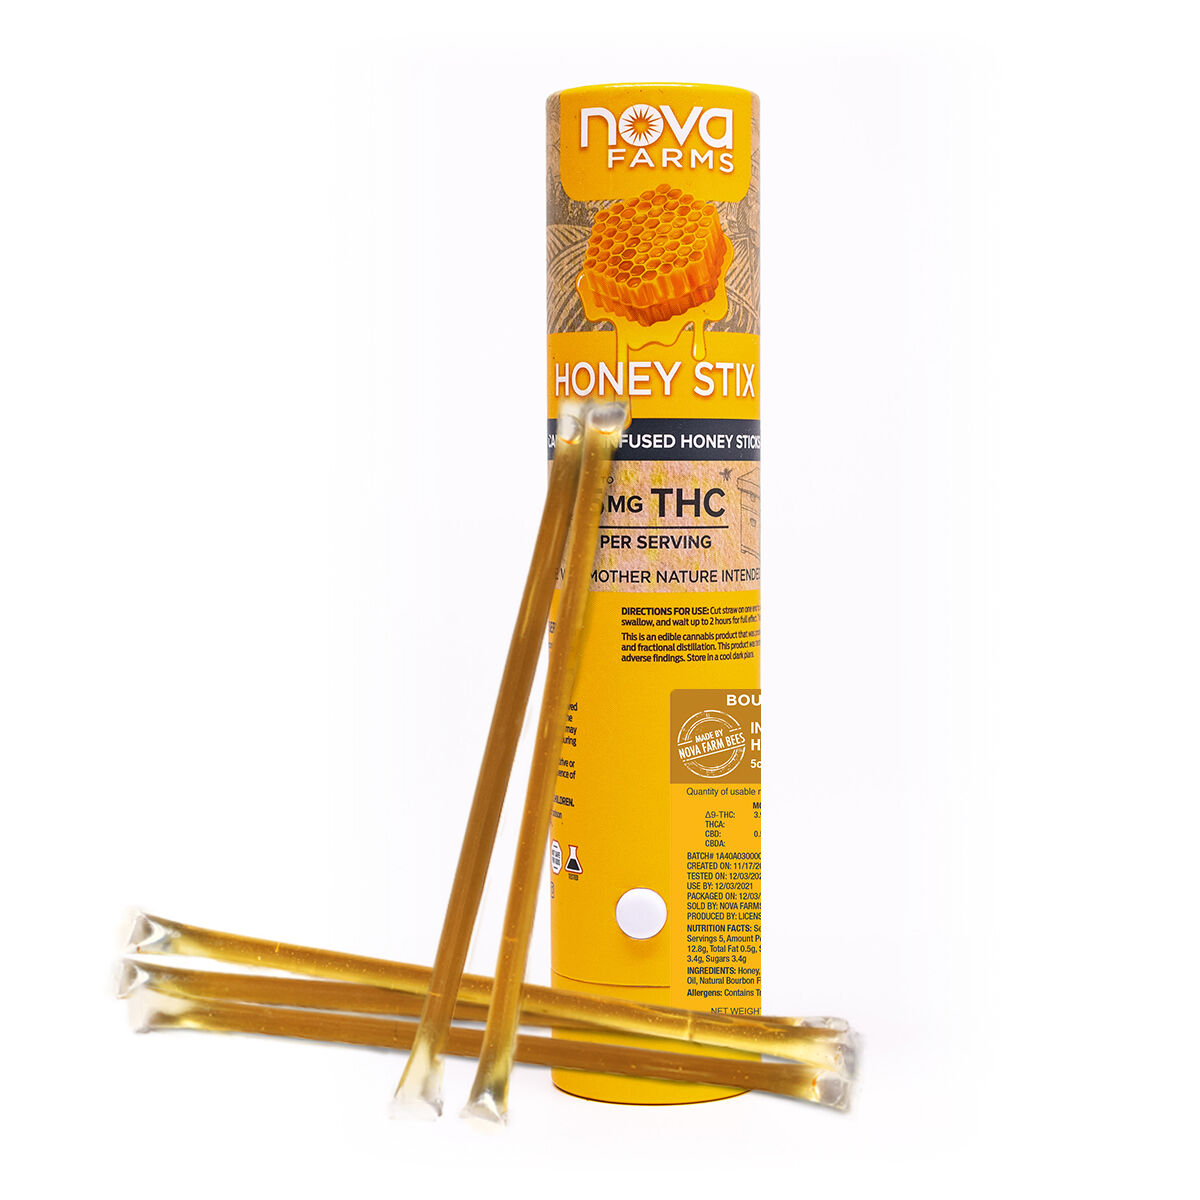 A cardboard tube of THC infused honey sticks.